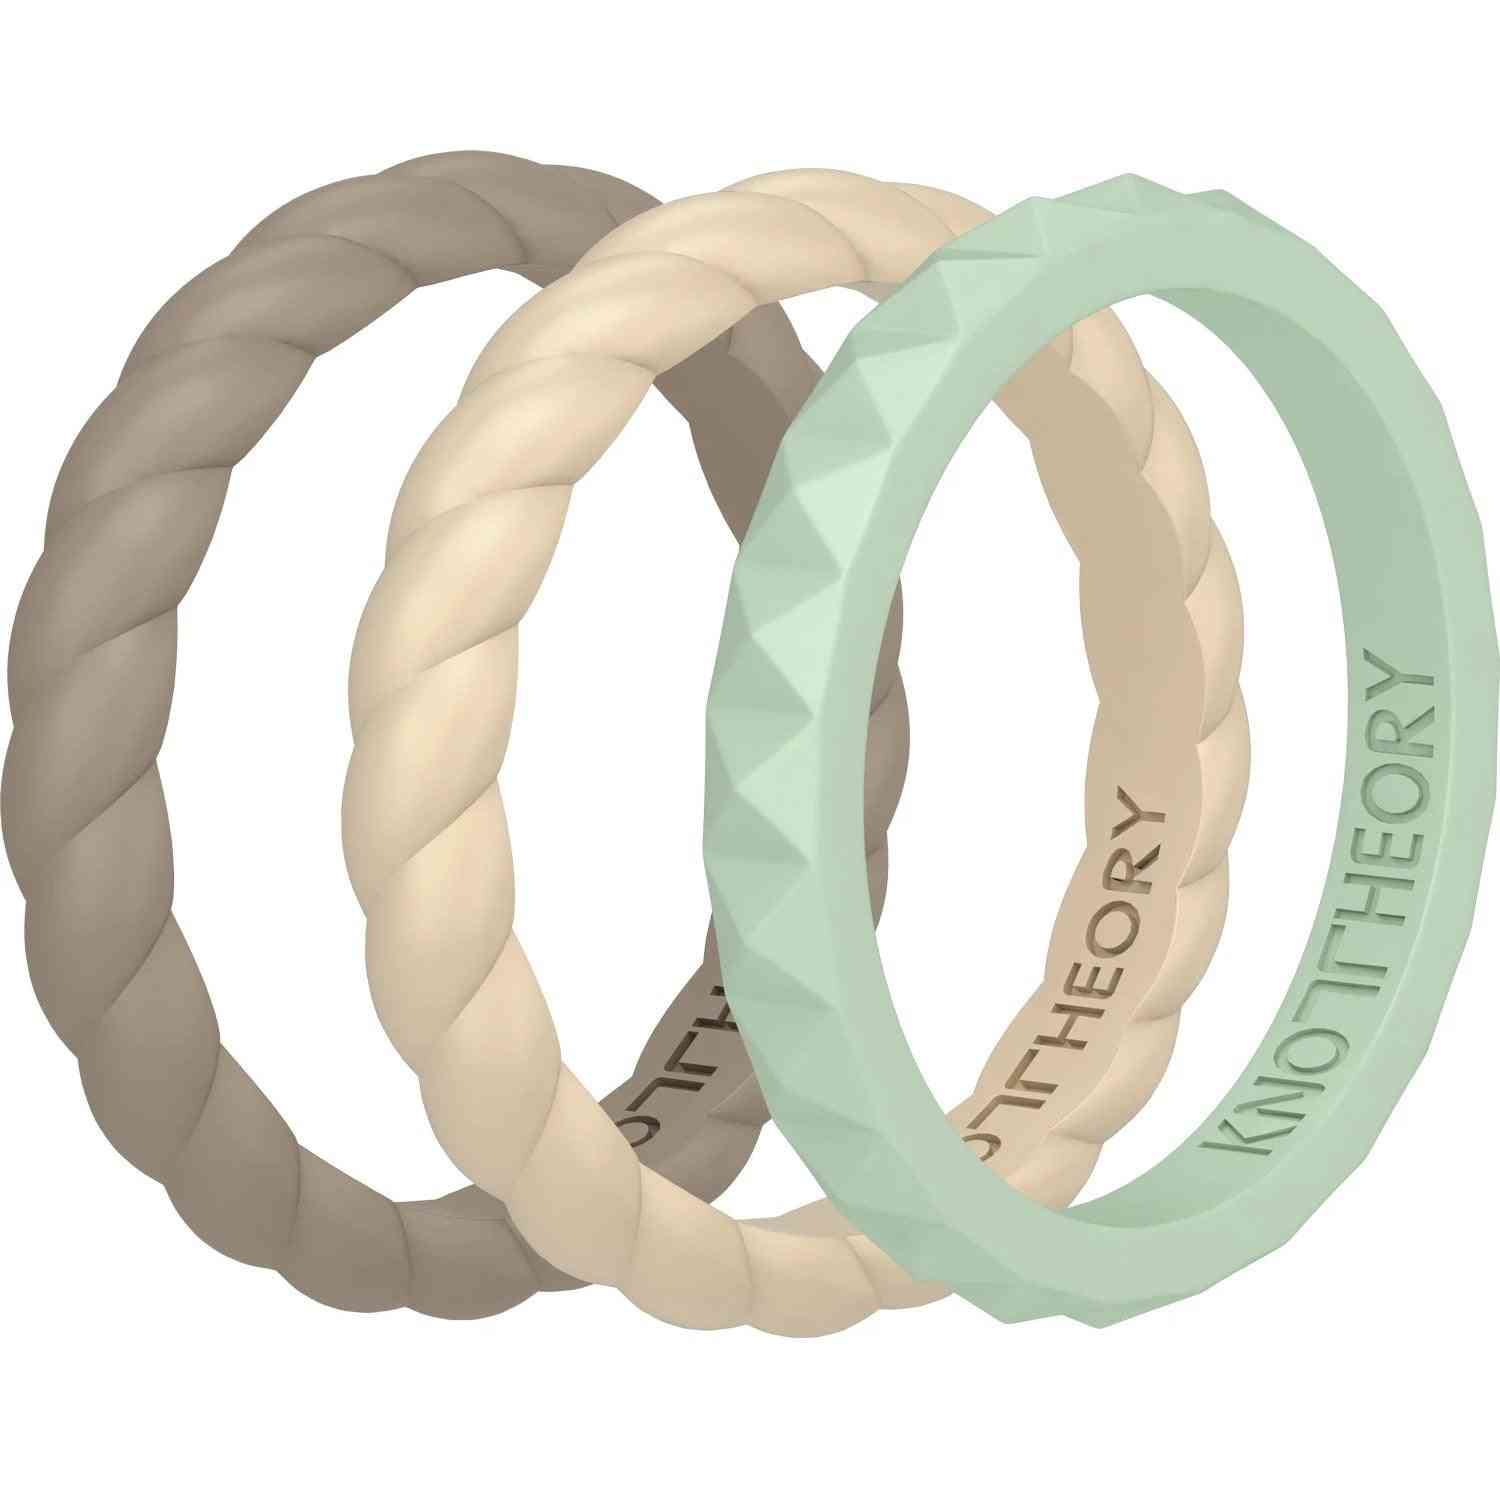 Kindness Stackable 3-pack Silicone Rings